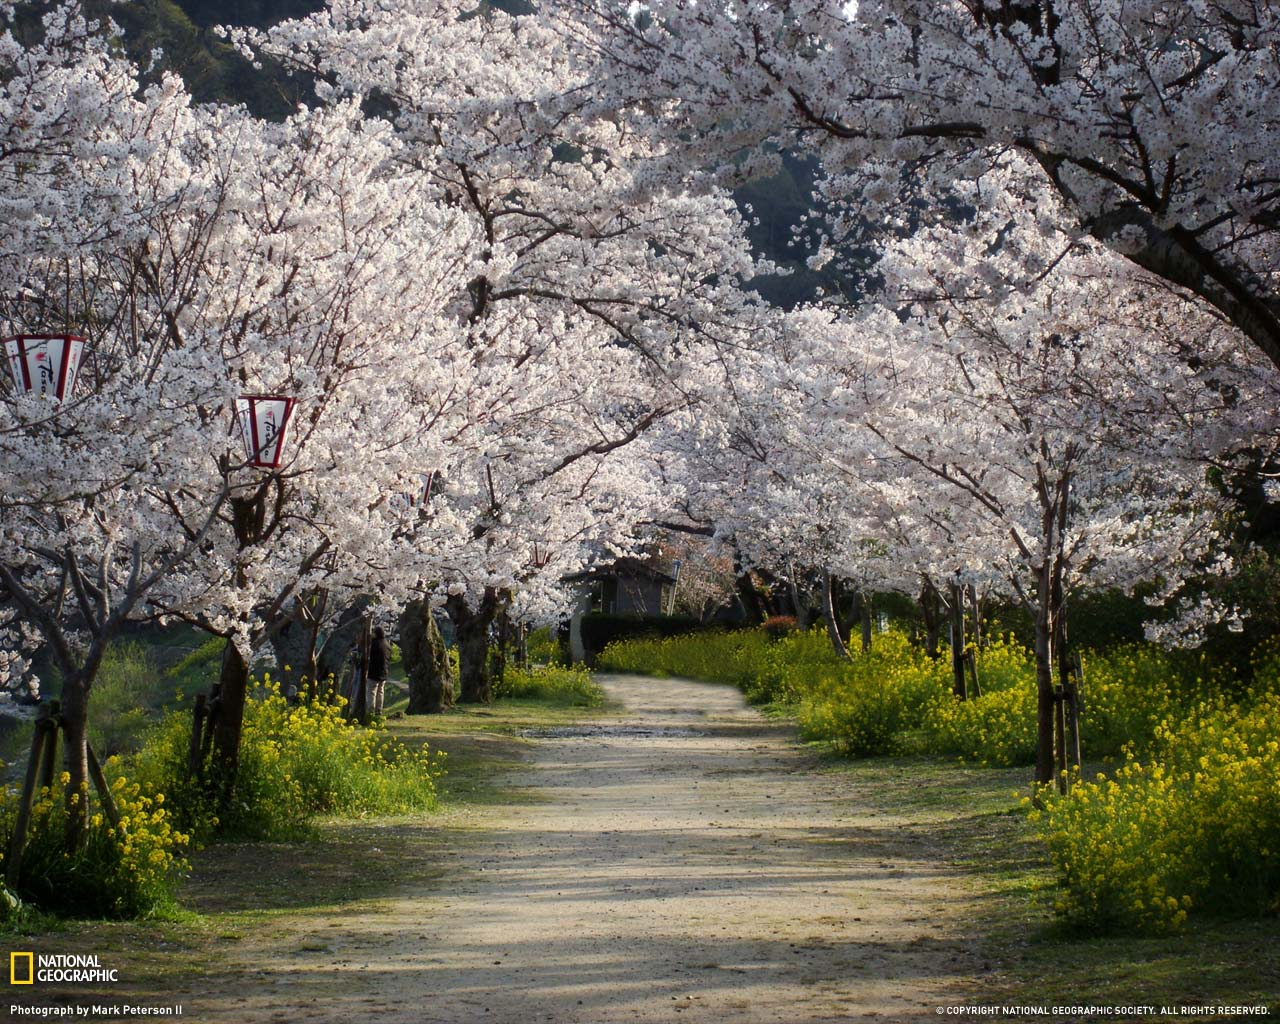 Best photos 2 share breathtaking national geographic - Nature japan wallpaper ...